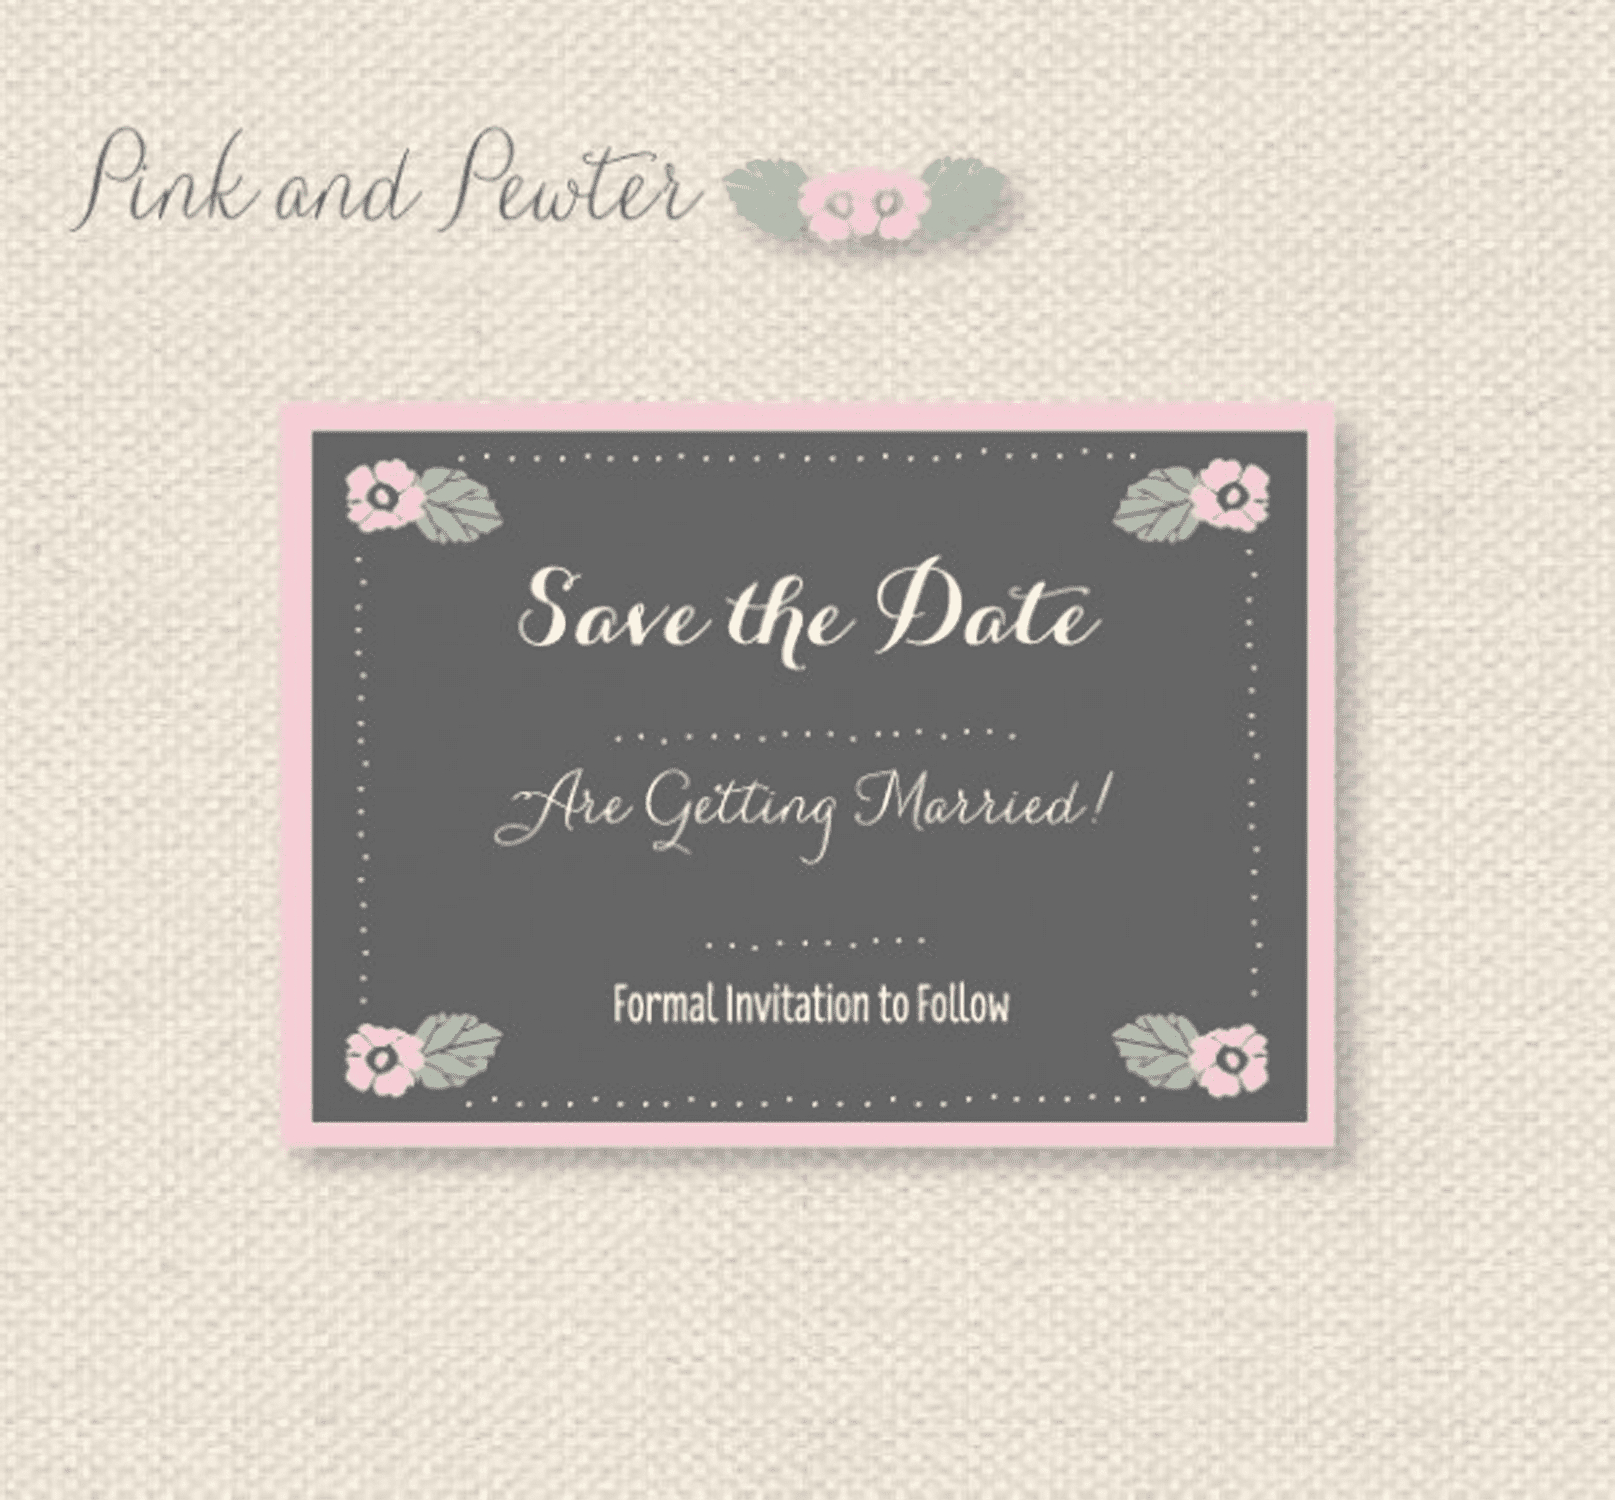 11 Free Save The Date Templates - Free Printable Save The Date Invitation Templates